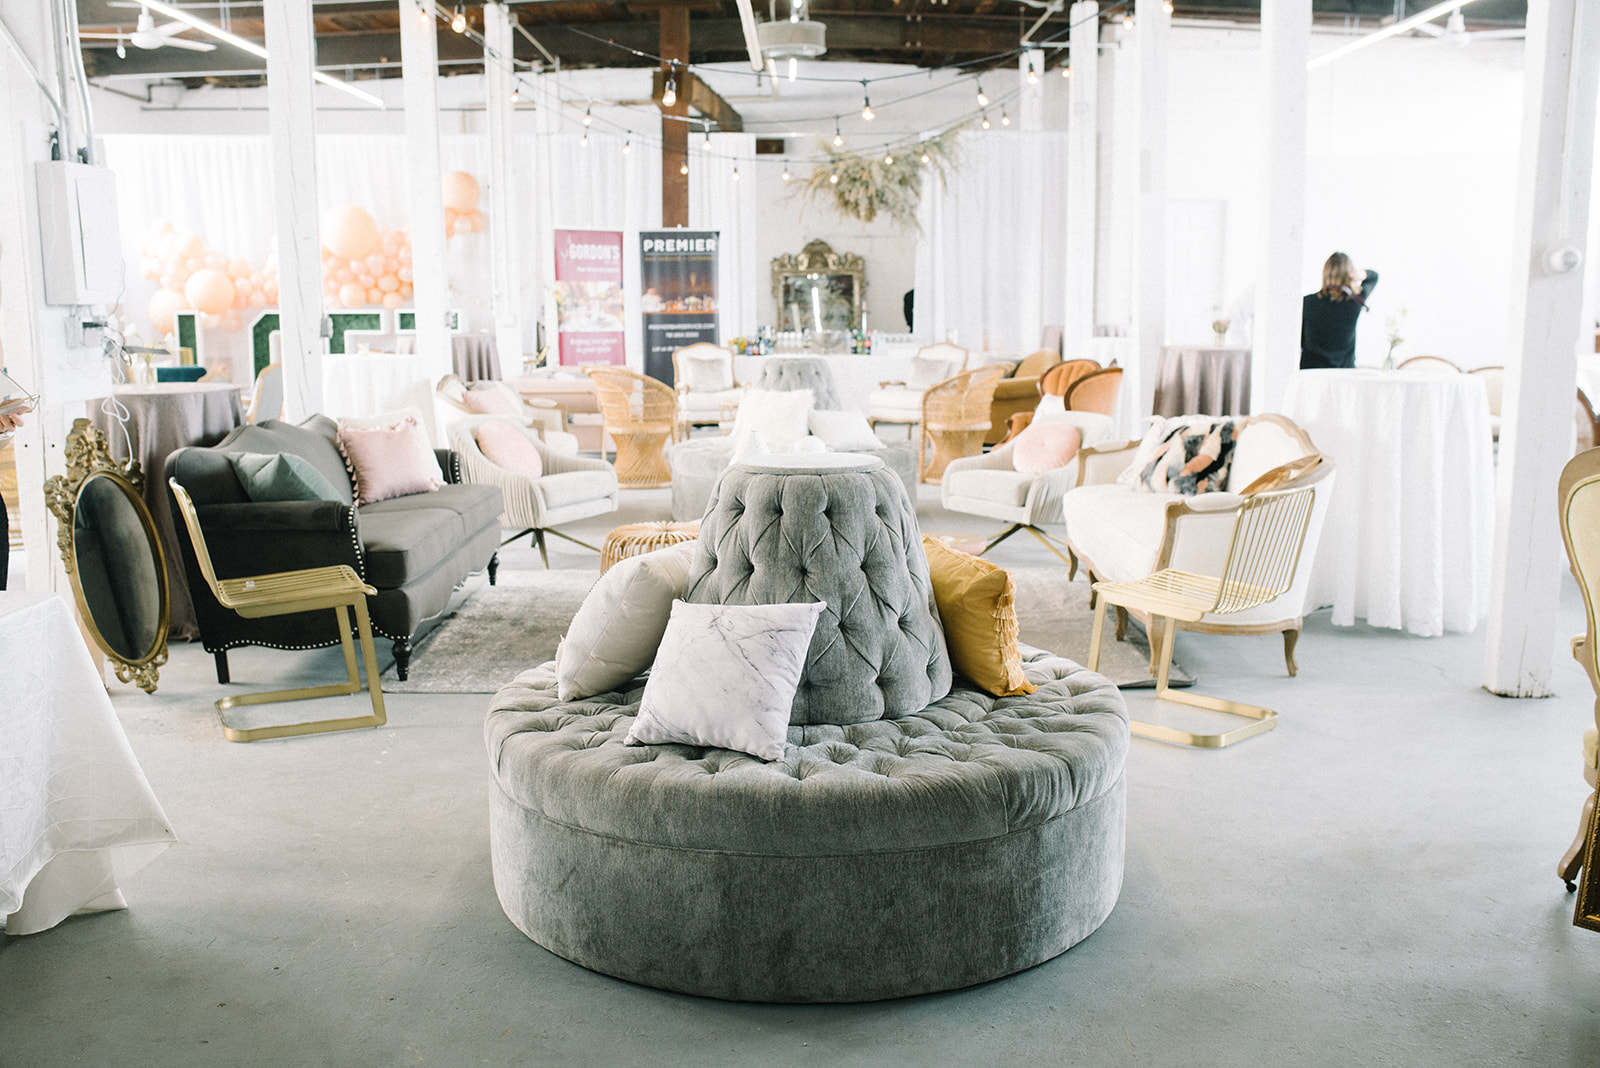 The Tannery Loft, Norwood ( Elizabeth Laduca Photography )